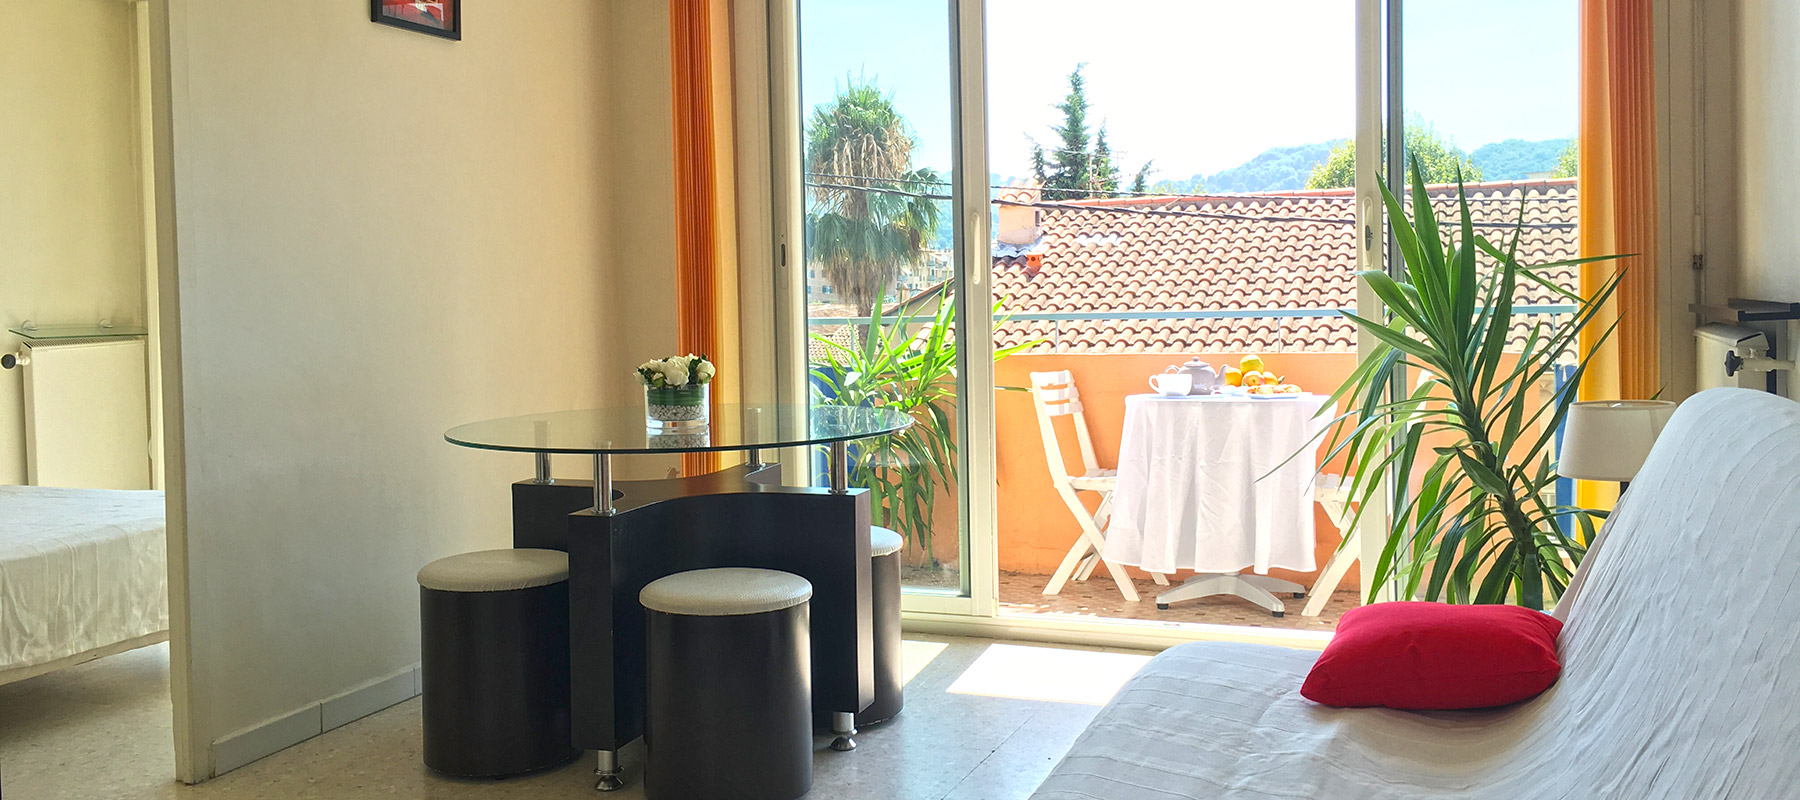 location-appartement-maison-cannes-antibes-vallauris-06-21